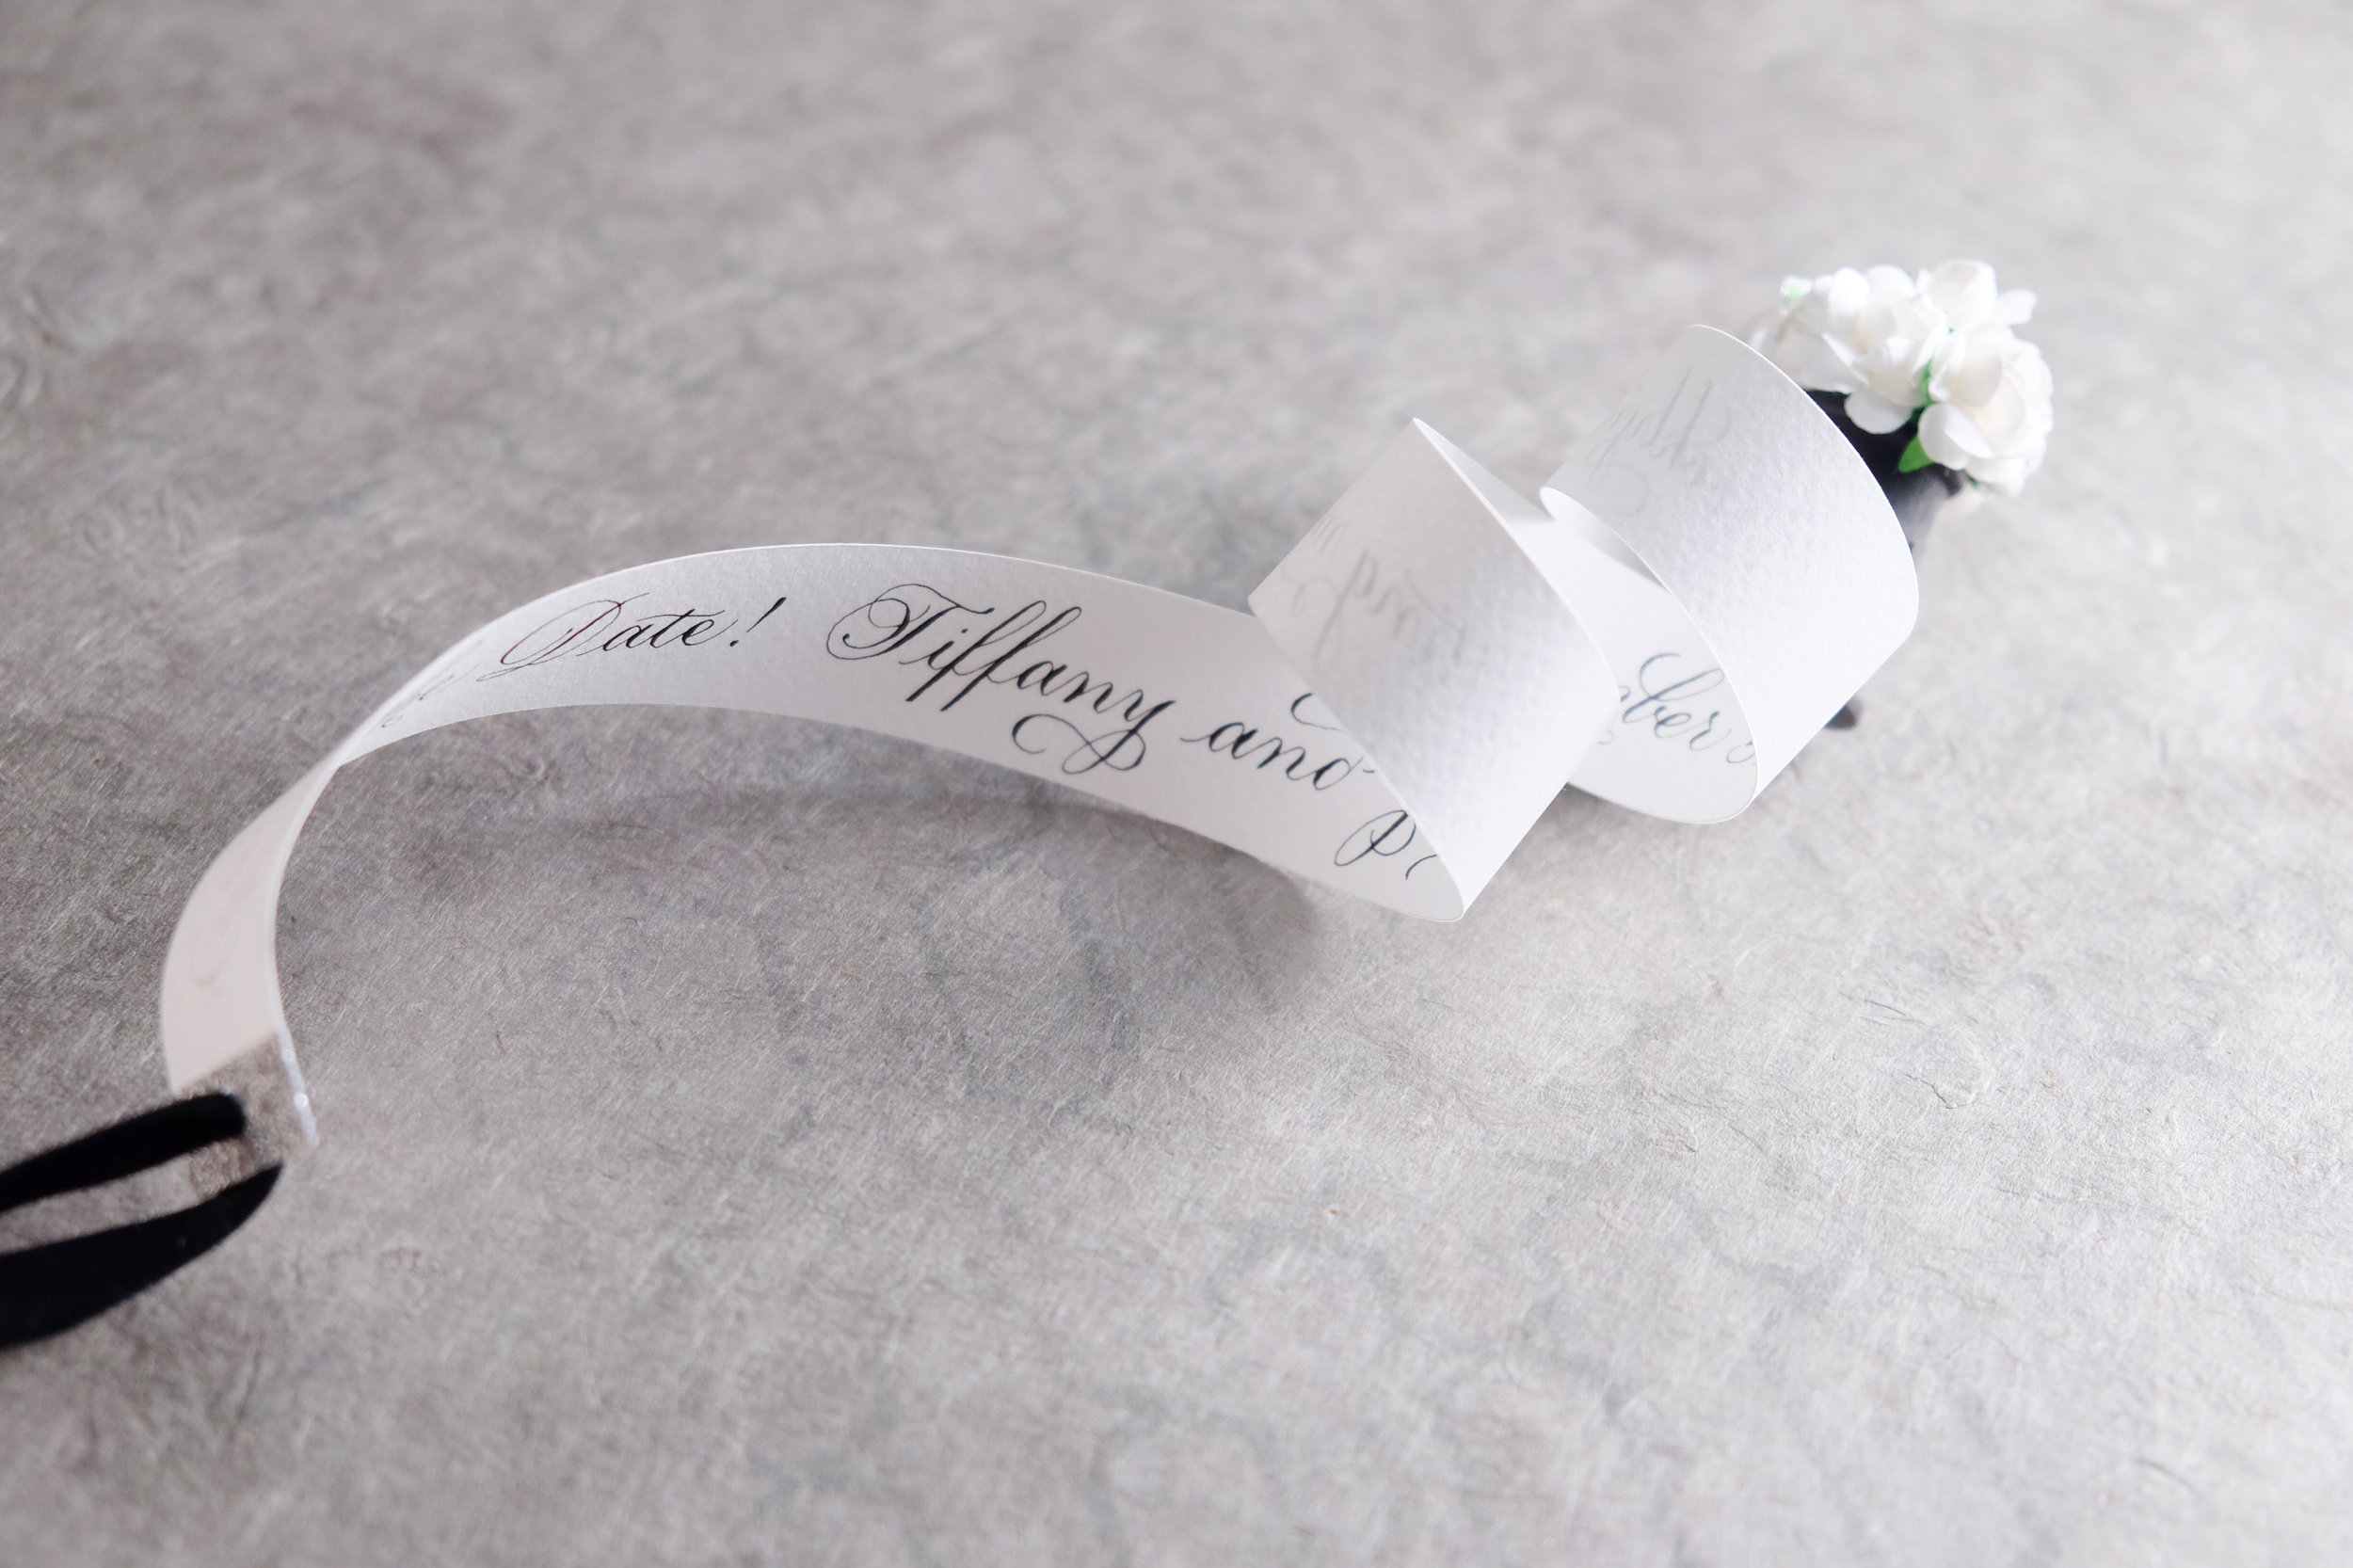 Hand-made Save the Date scrolls with calligraphy for a sophisticated NYC wedding   www.chavelli.com